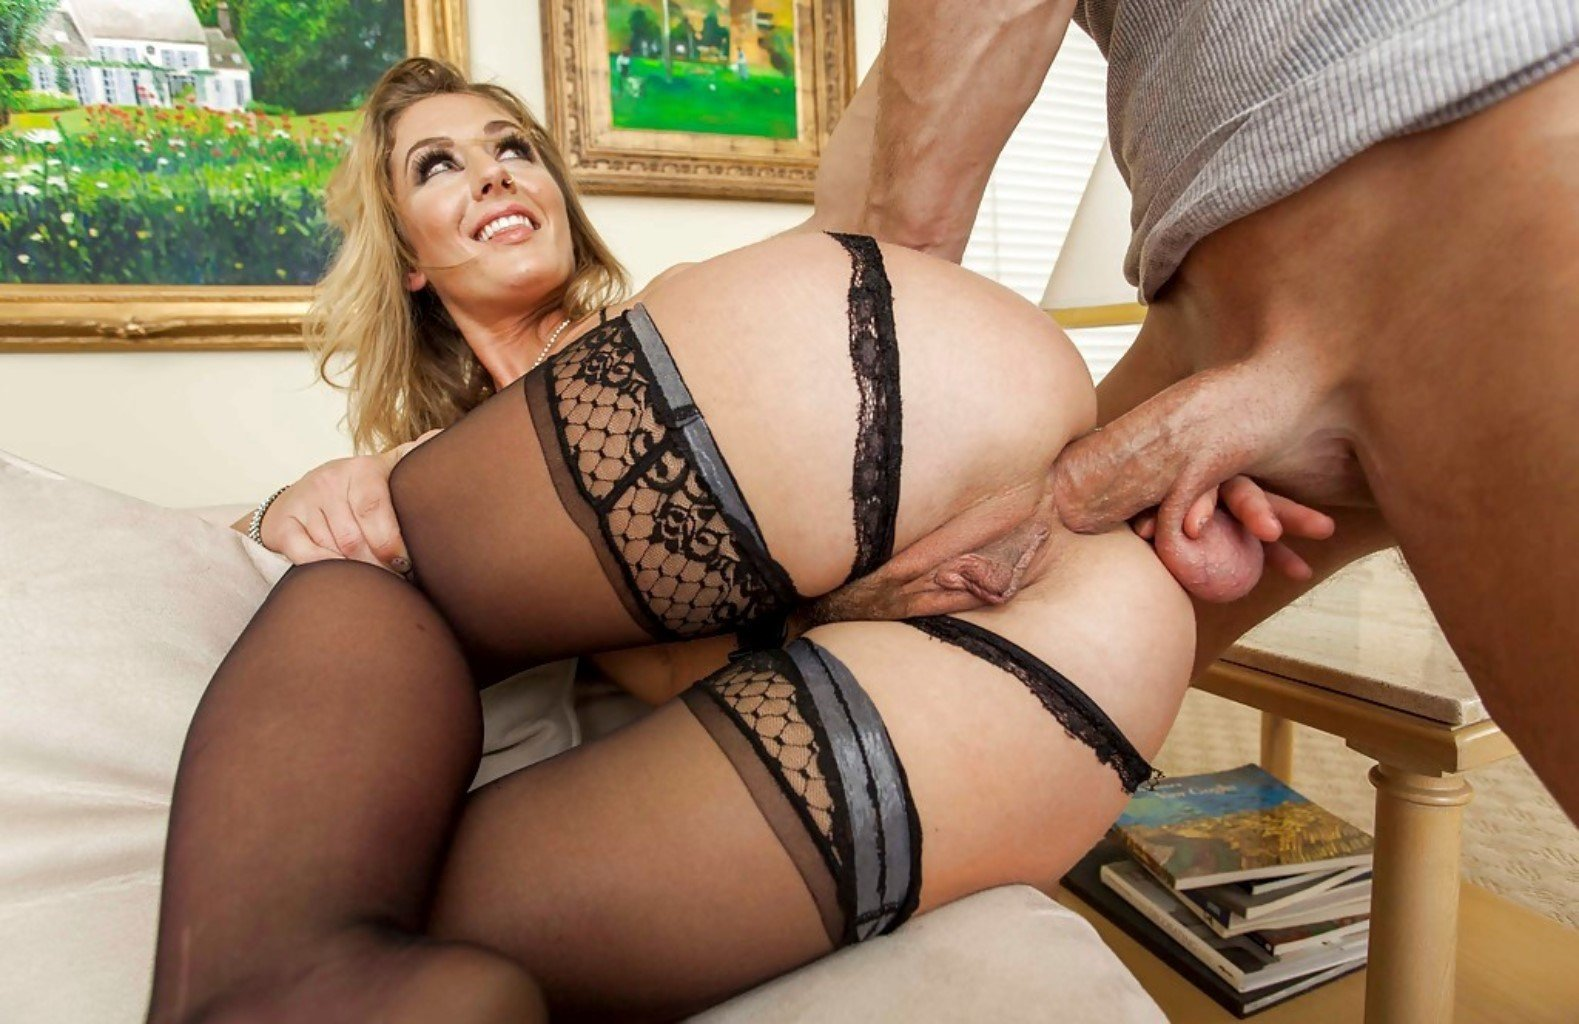 Good Facial For Milf Cougar In Stockings And Heels